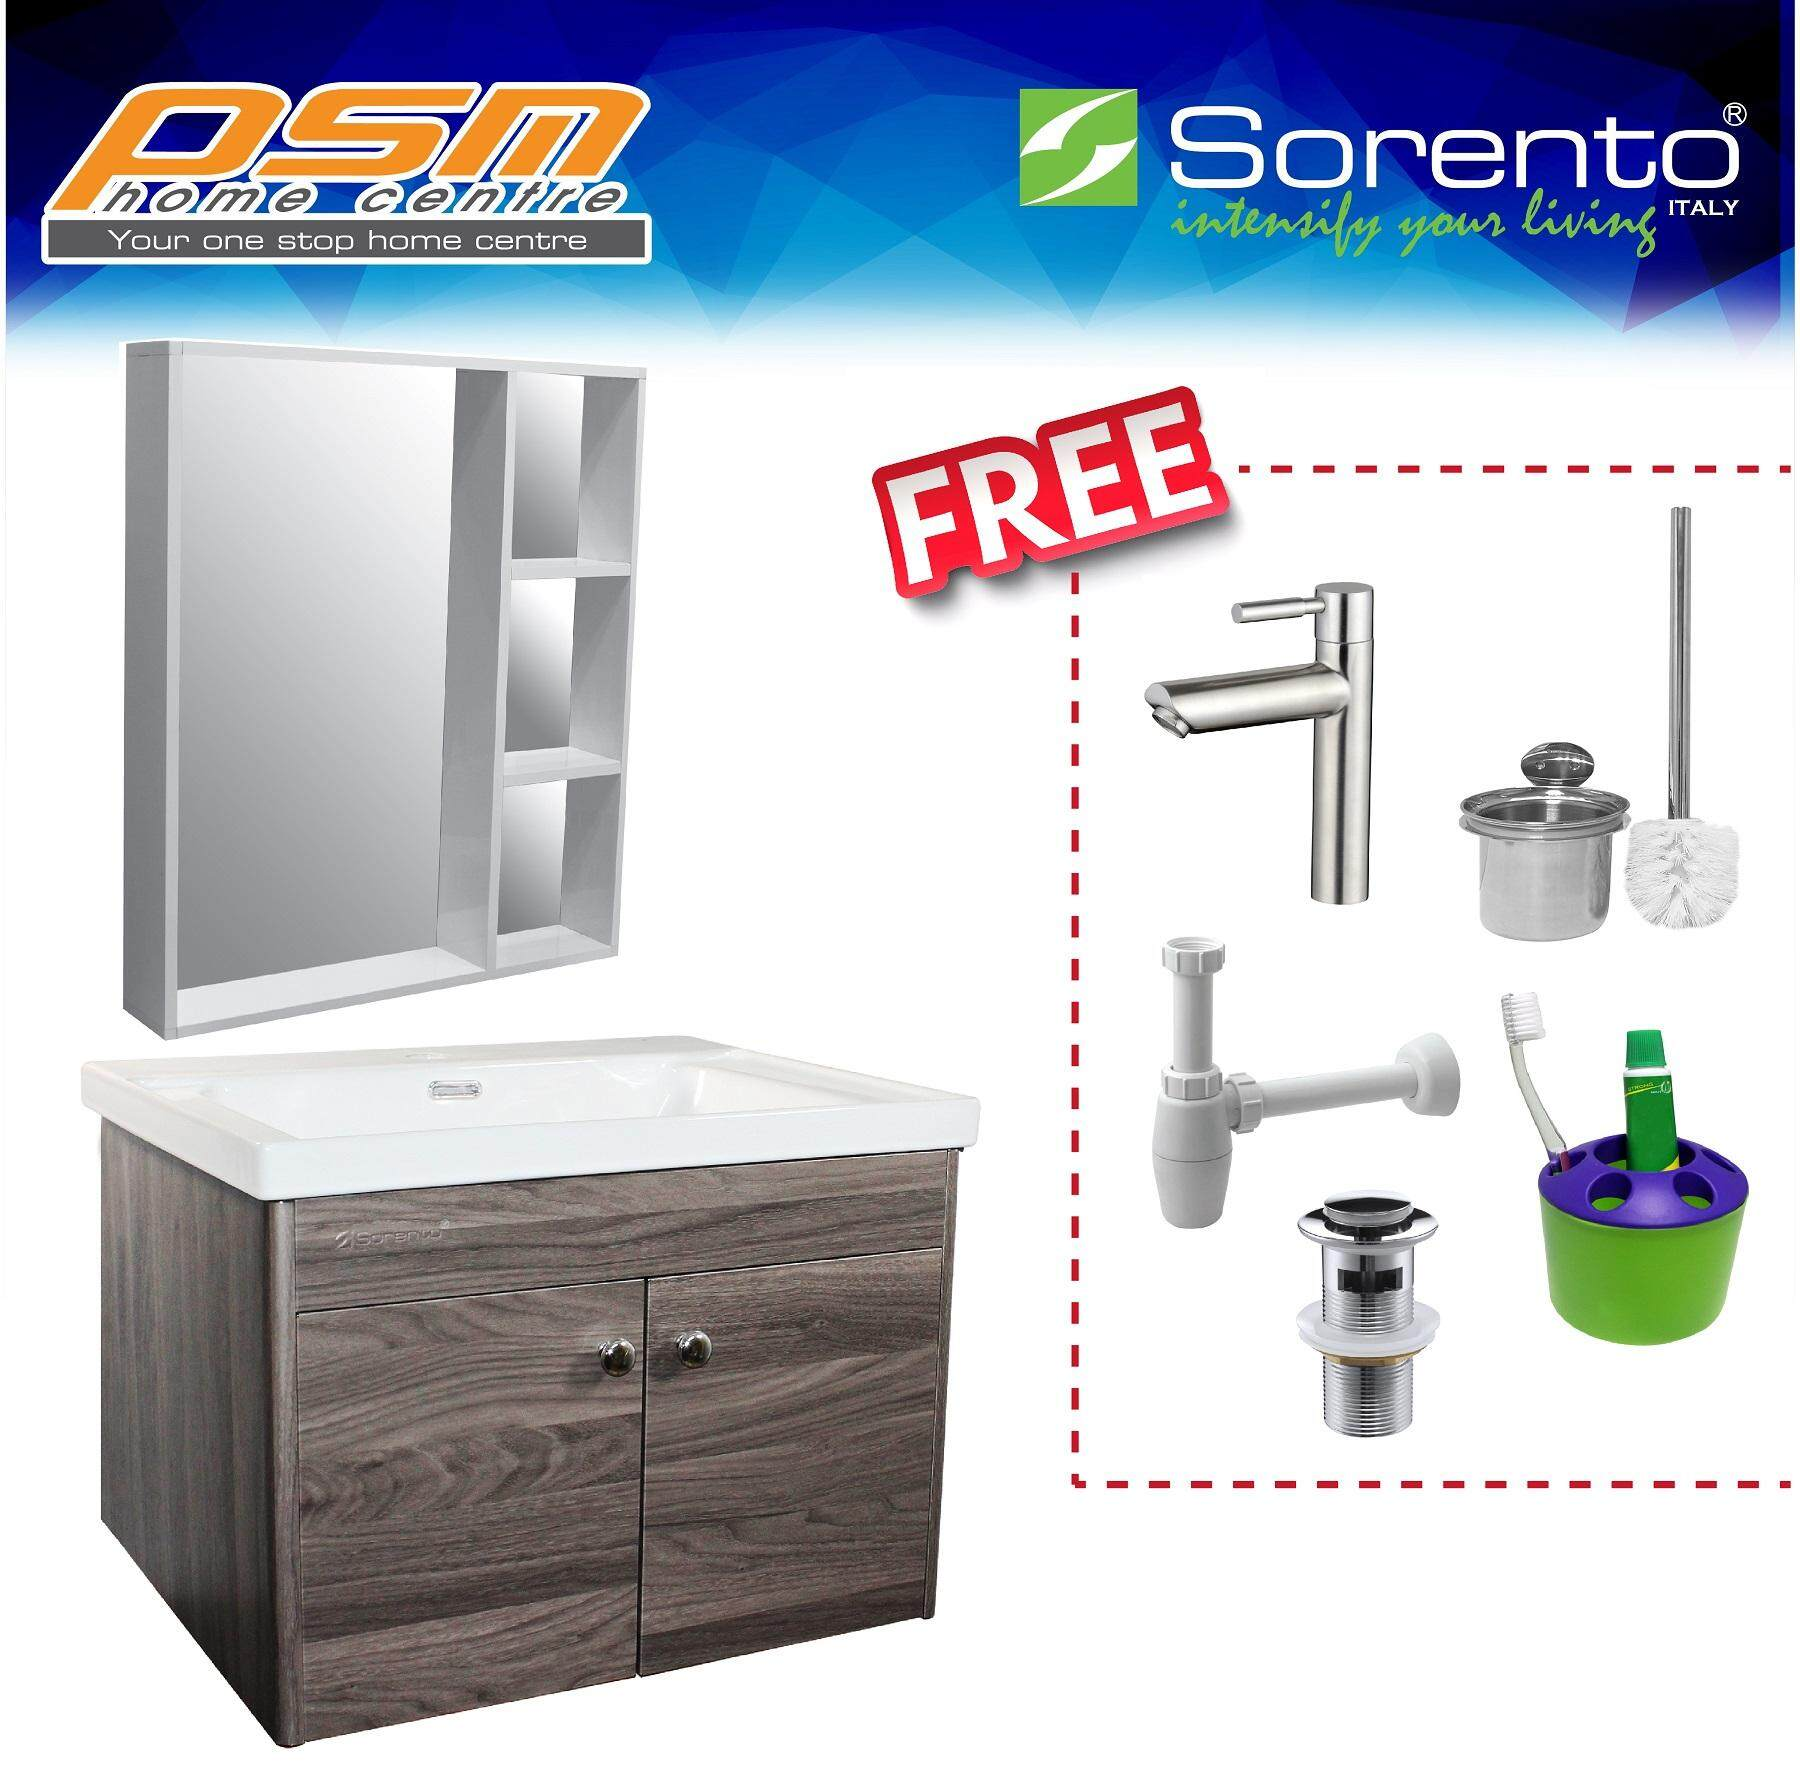 SORENTO Stainless Steel 304 Material Bathroom Basin Cabinet Package SRTBF11606